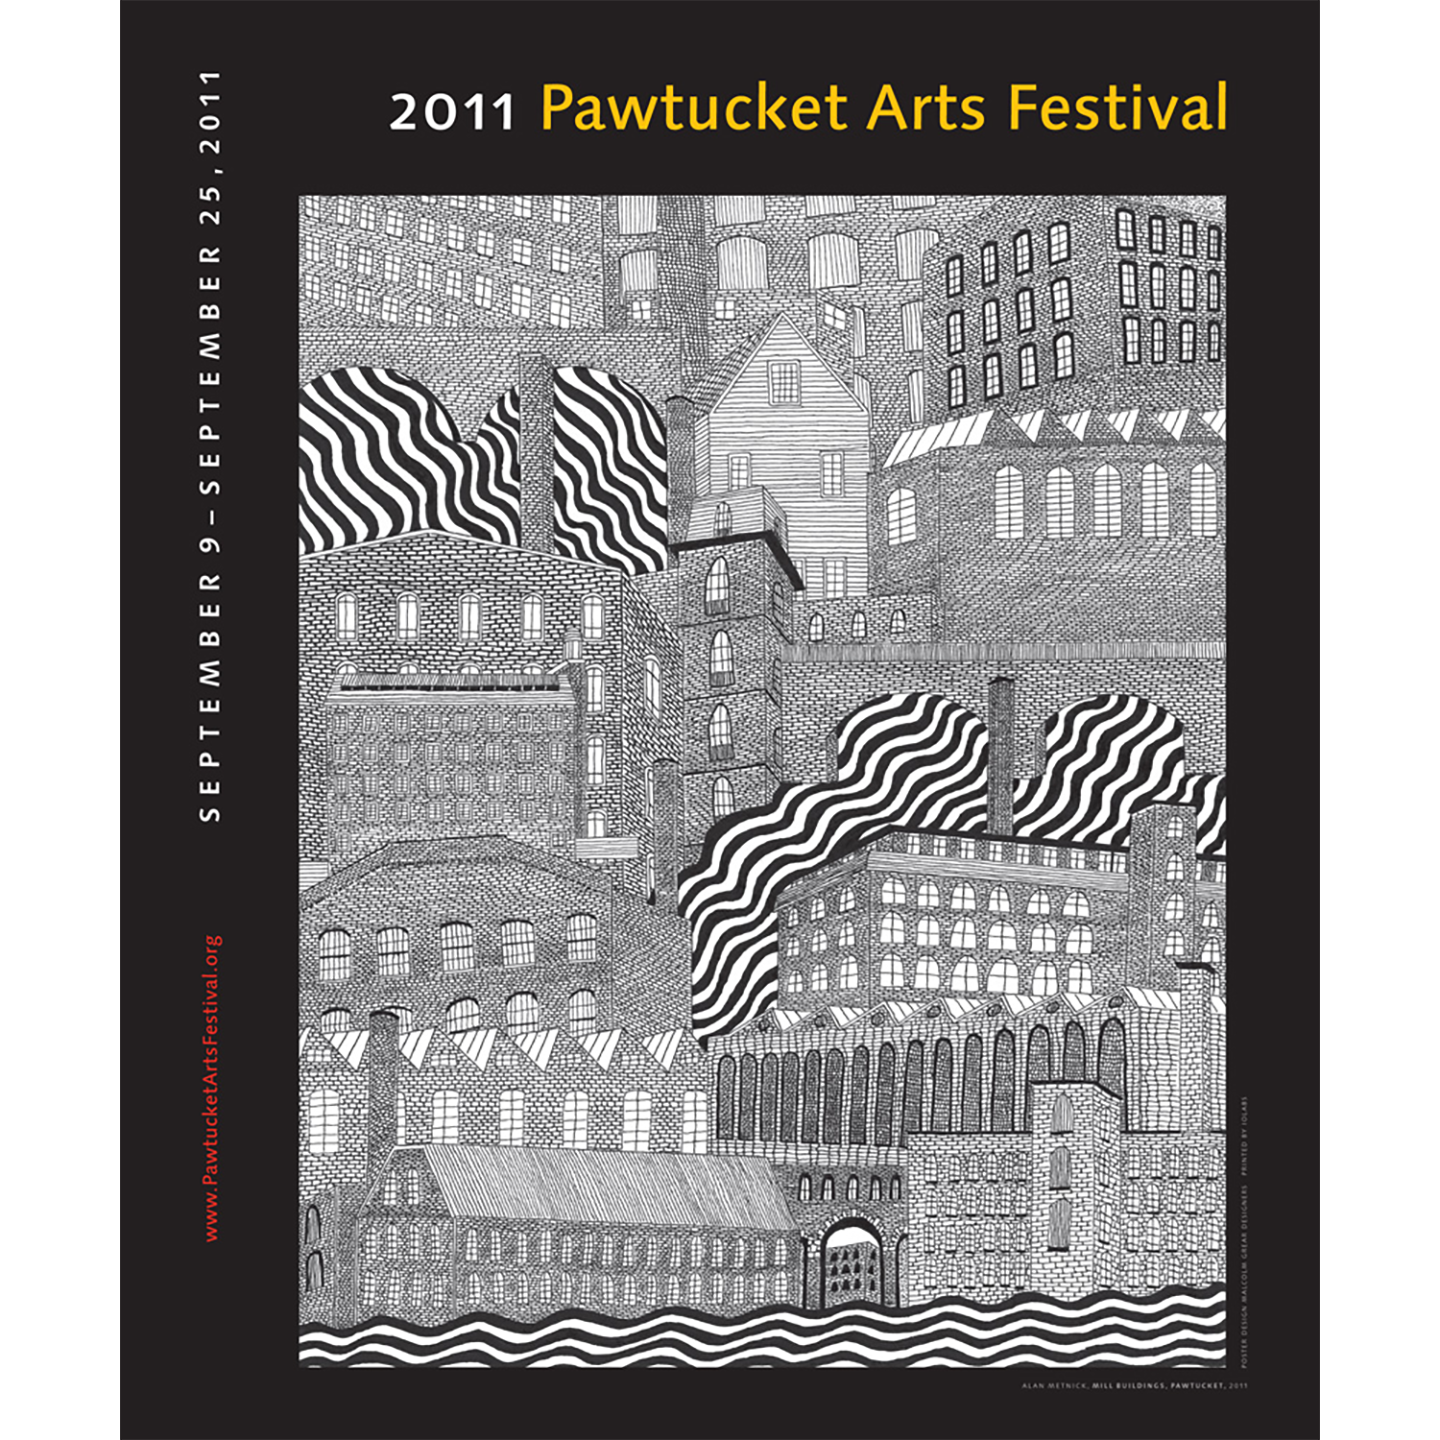 PawtucketFestival2011.png